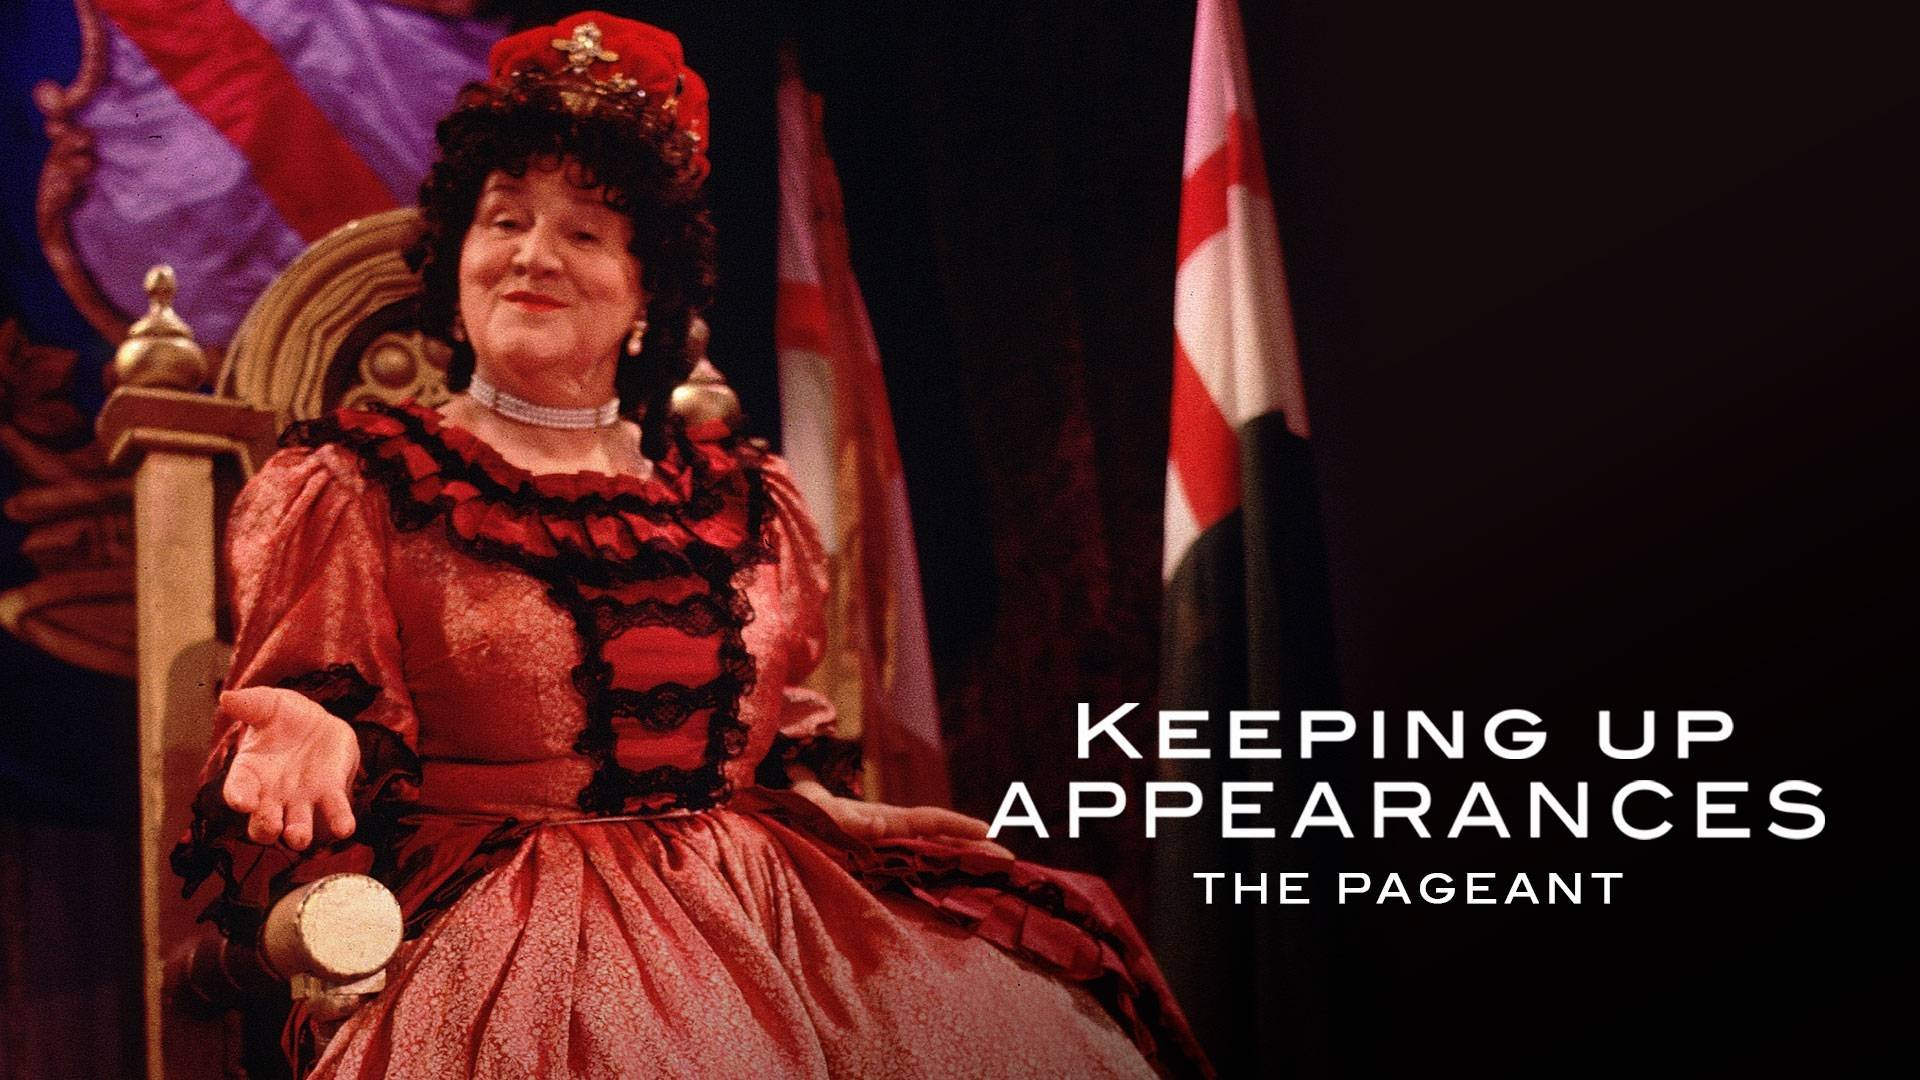 Keeping Up Appearances Christmas Special 1995: The Pageant on BritBox UK